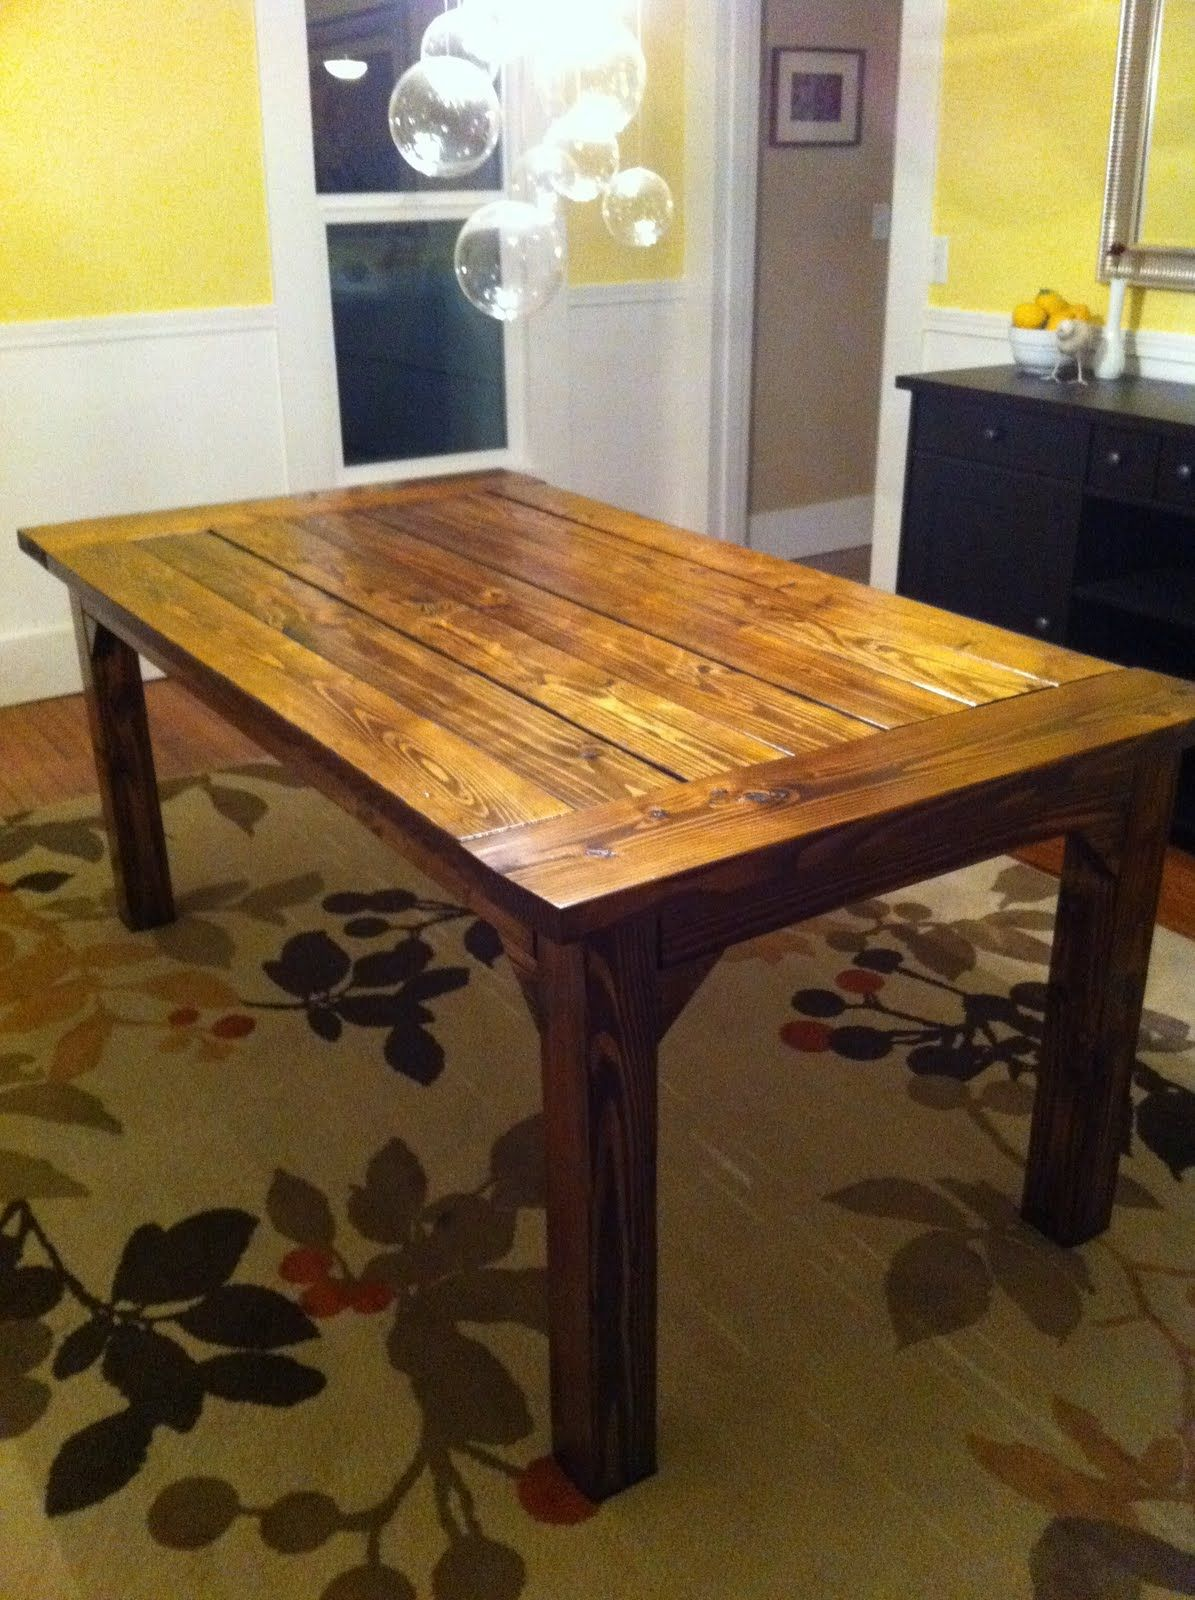 praying for sunshine: I Built a Farmhouse Table